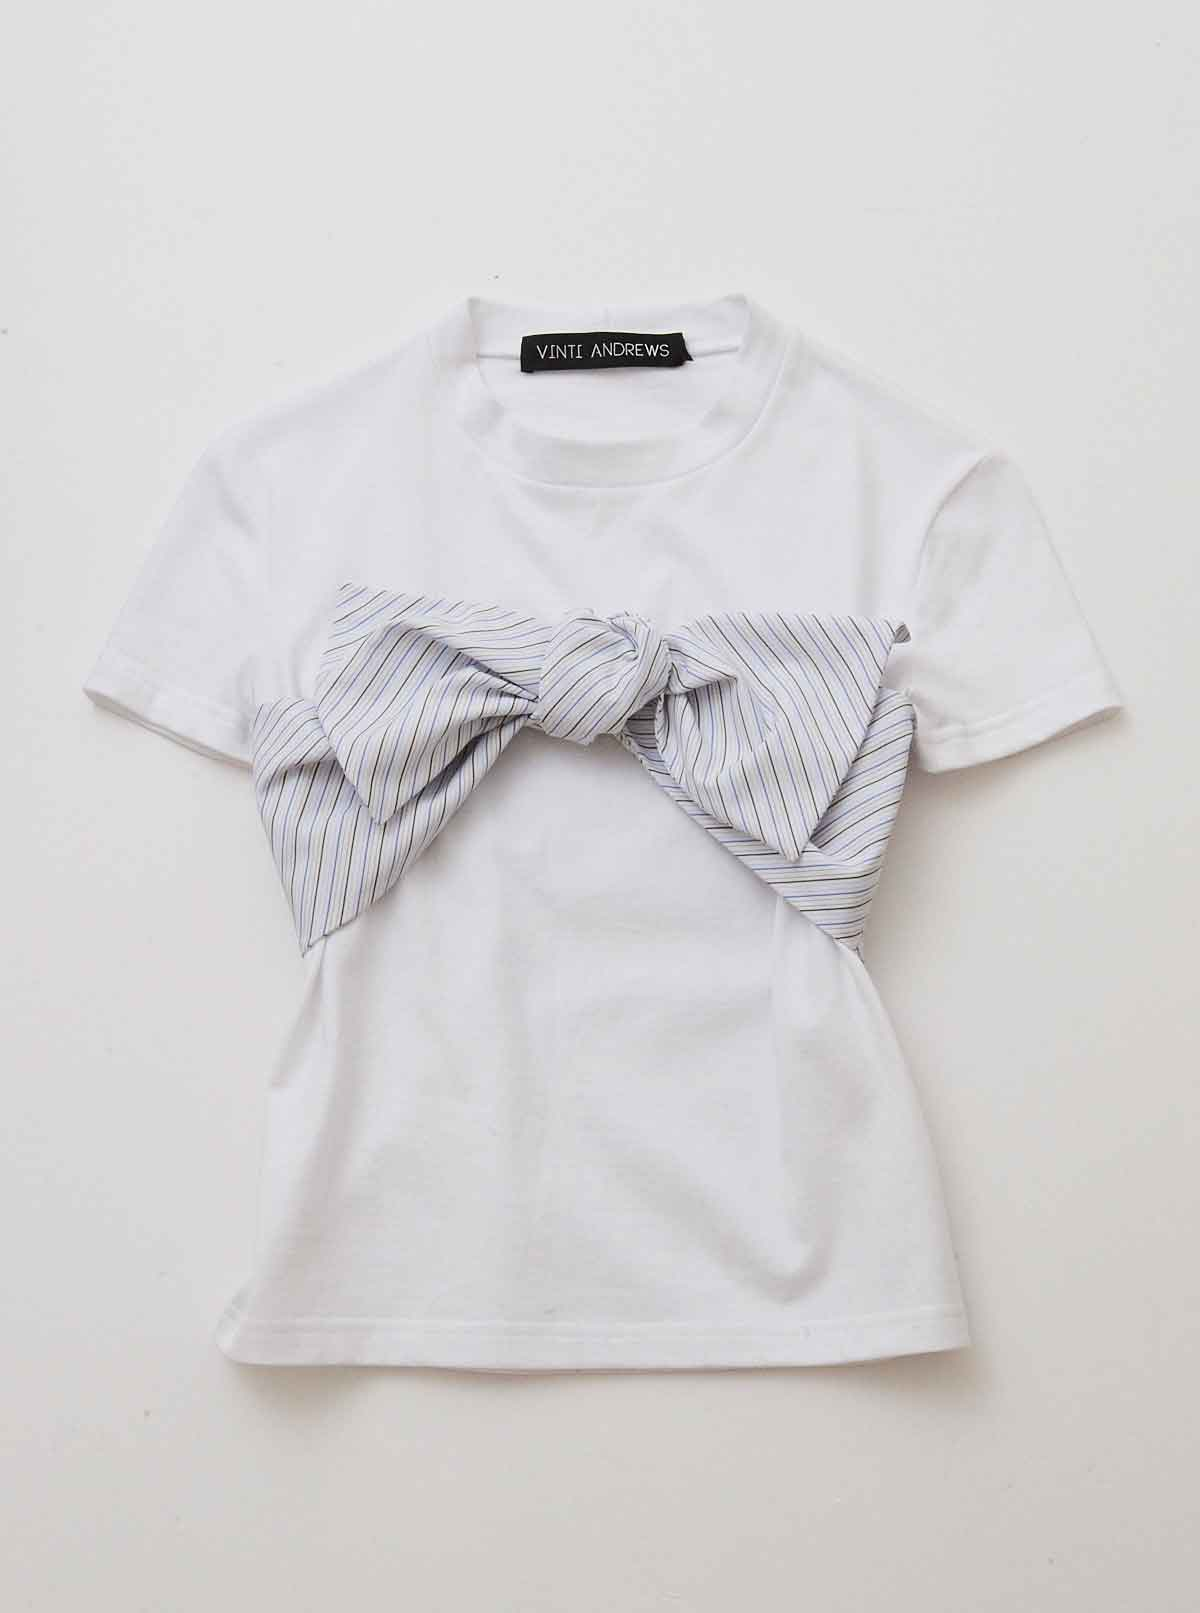 Vinti Andrews Bustier Bow T-Shirt